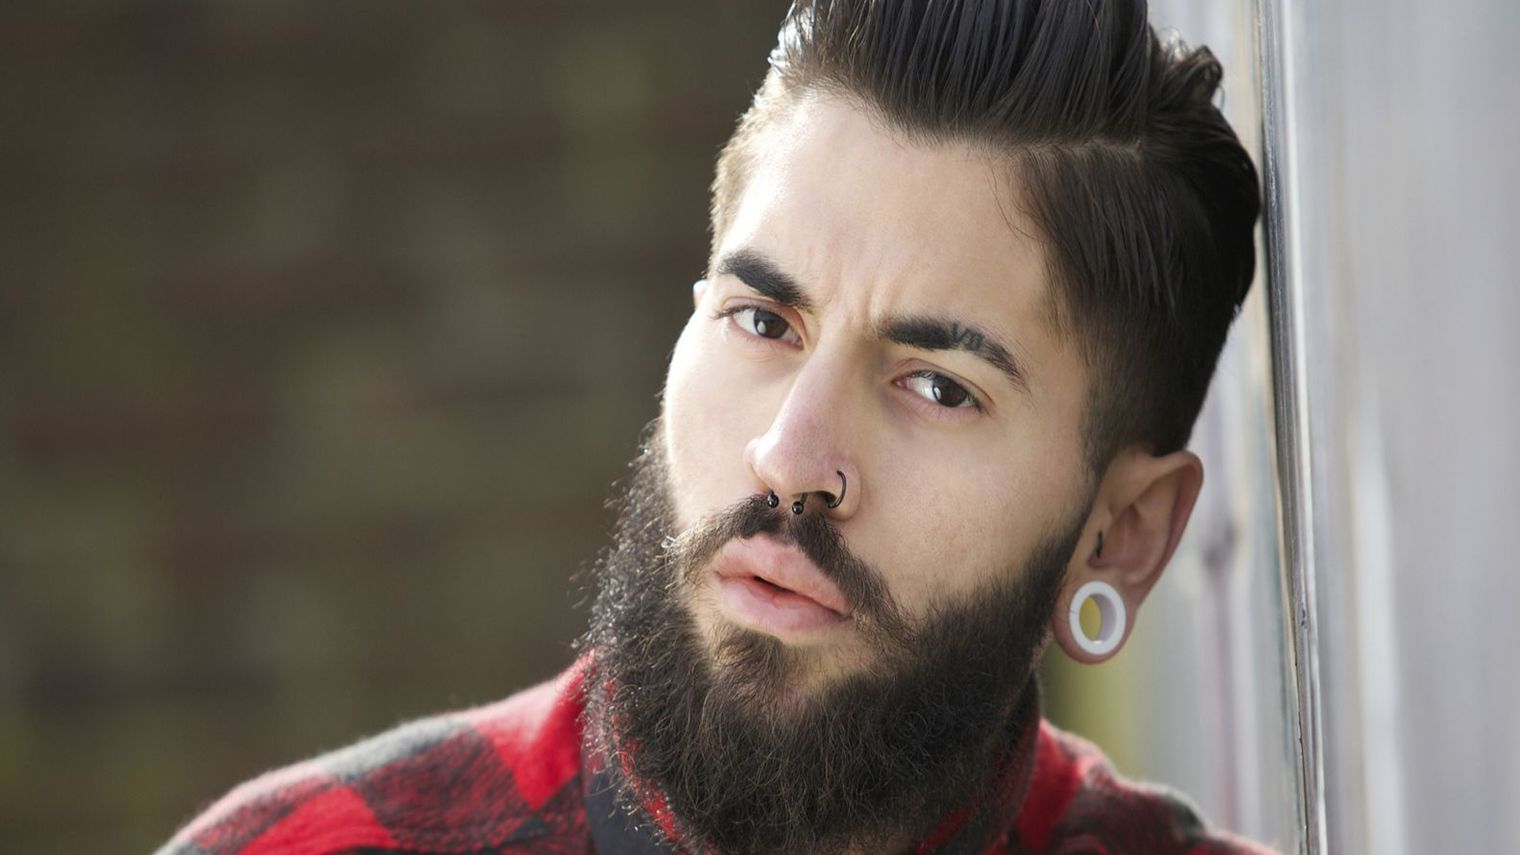 Tailler une barbe top ne pas tailler sa barbe with tailler une barbe perfect tailler barbe - Taille barbe 10 jours ...